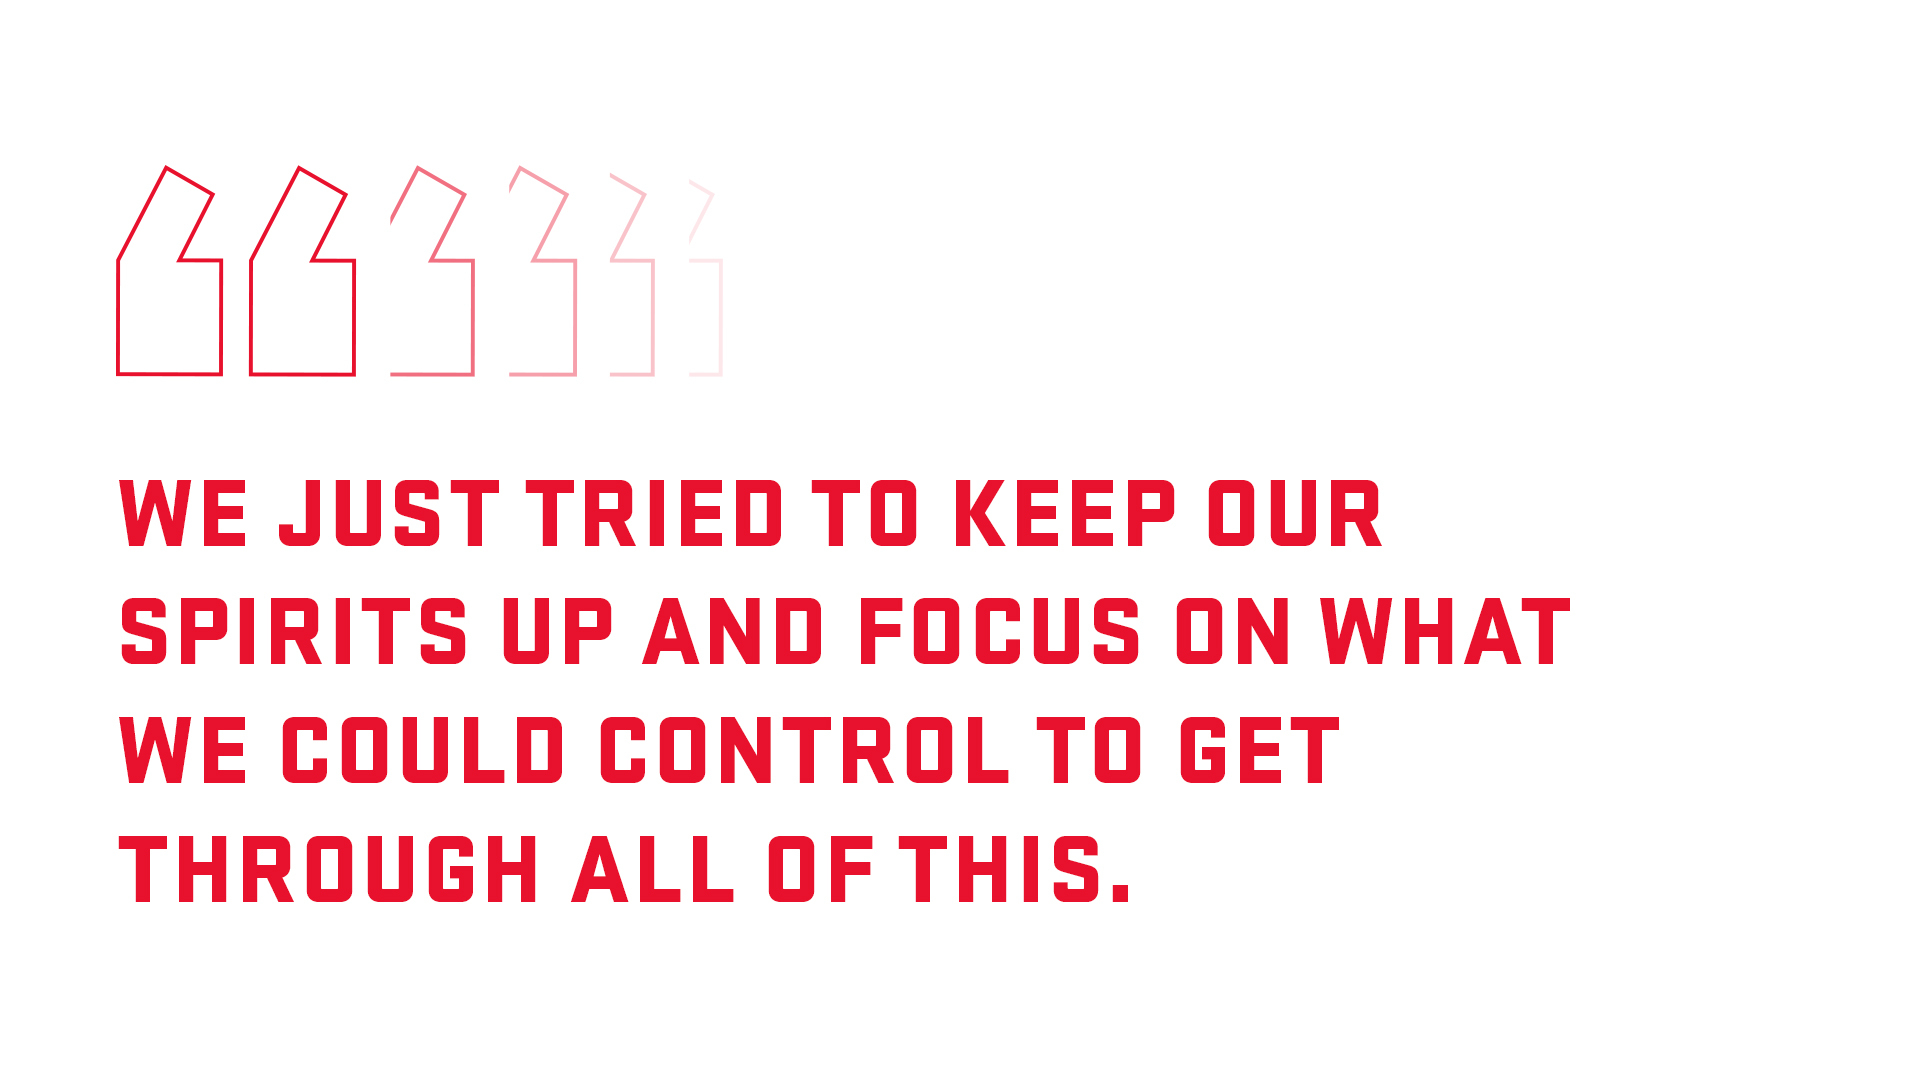 Block quote: We just tried to keep out spirits up and focus on what we could control to get through all of this.